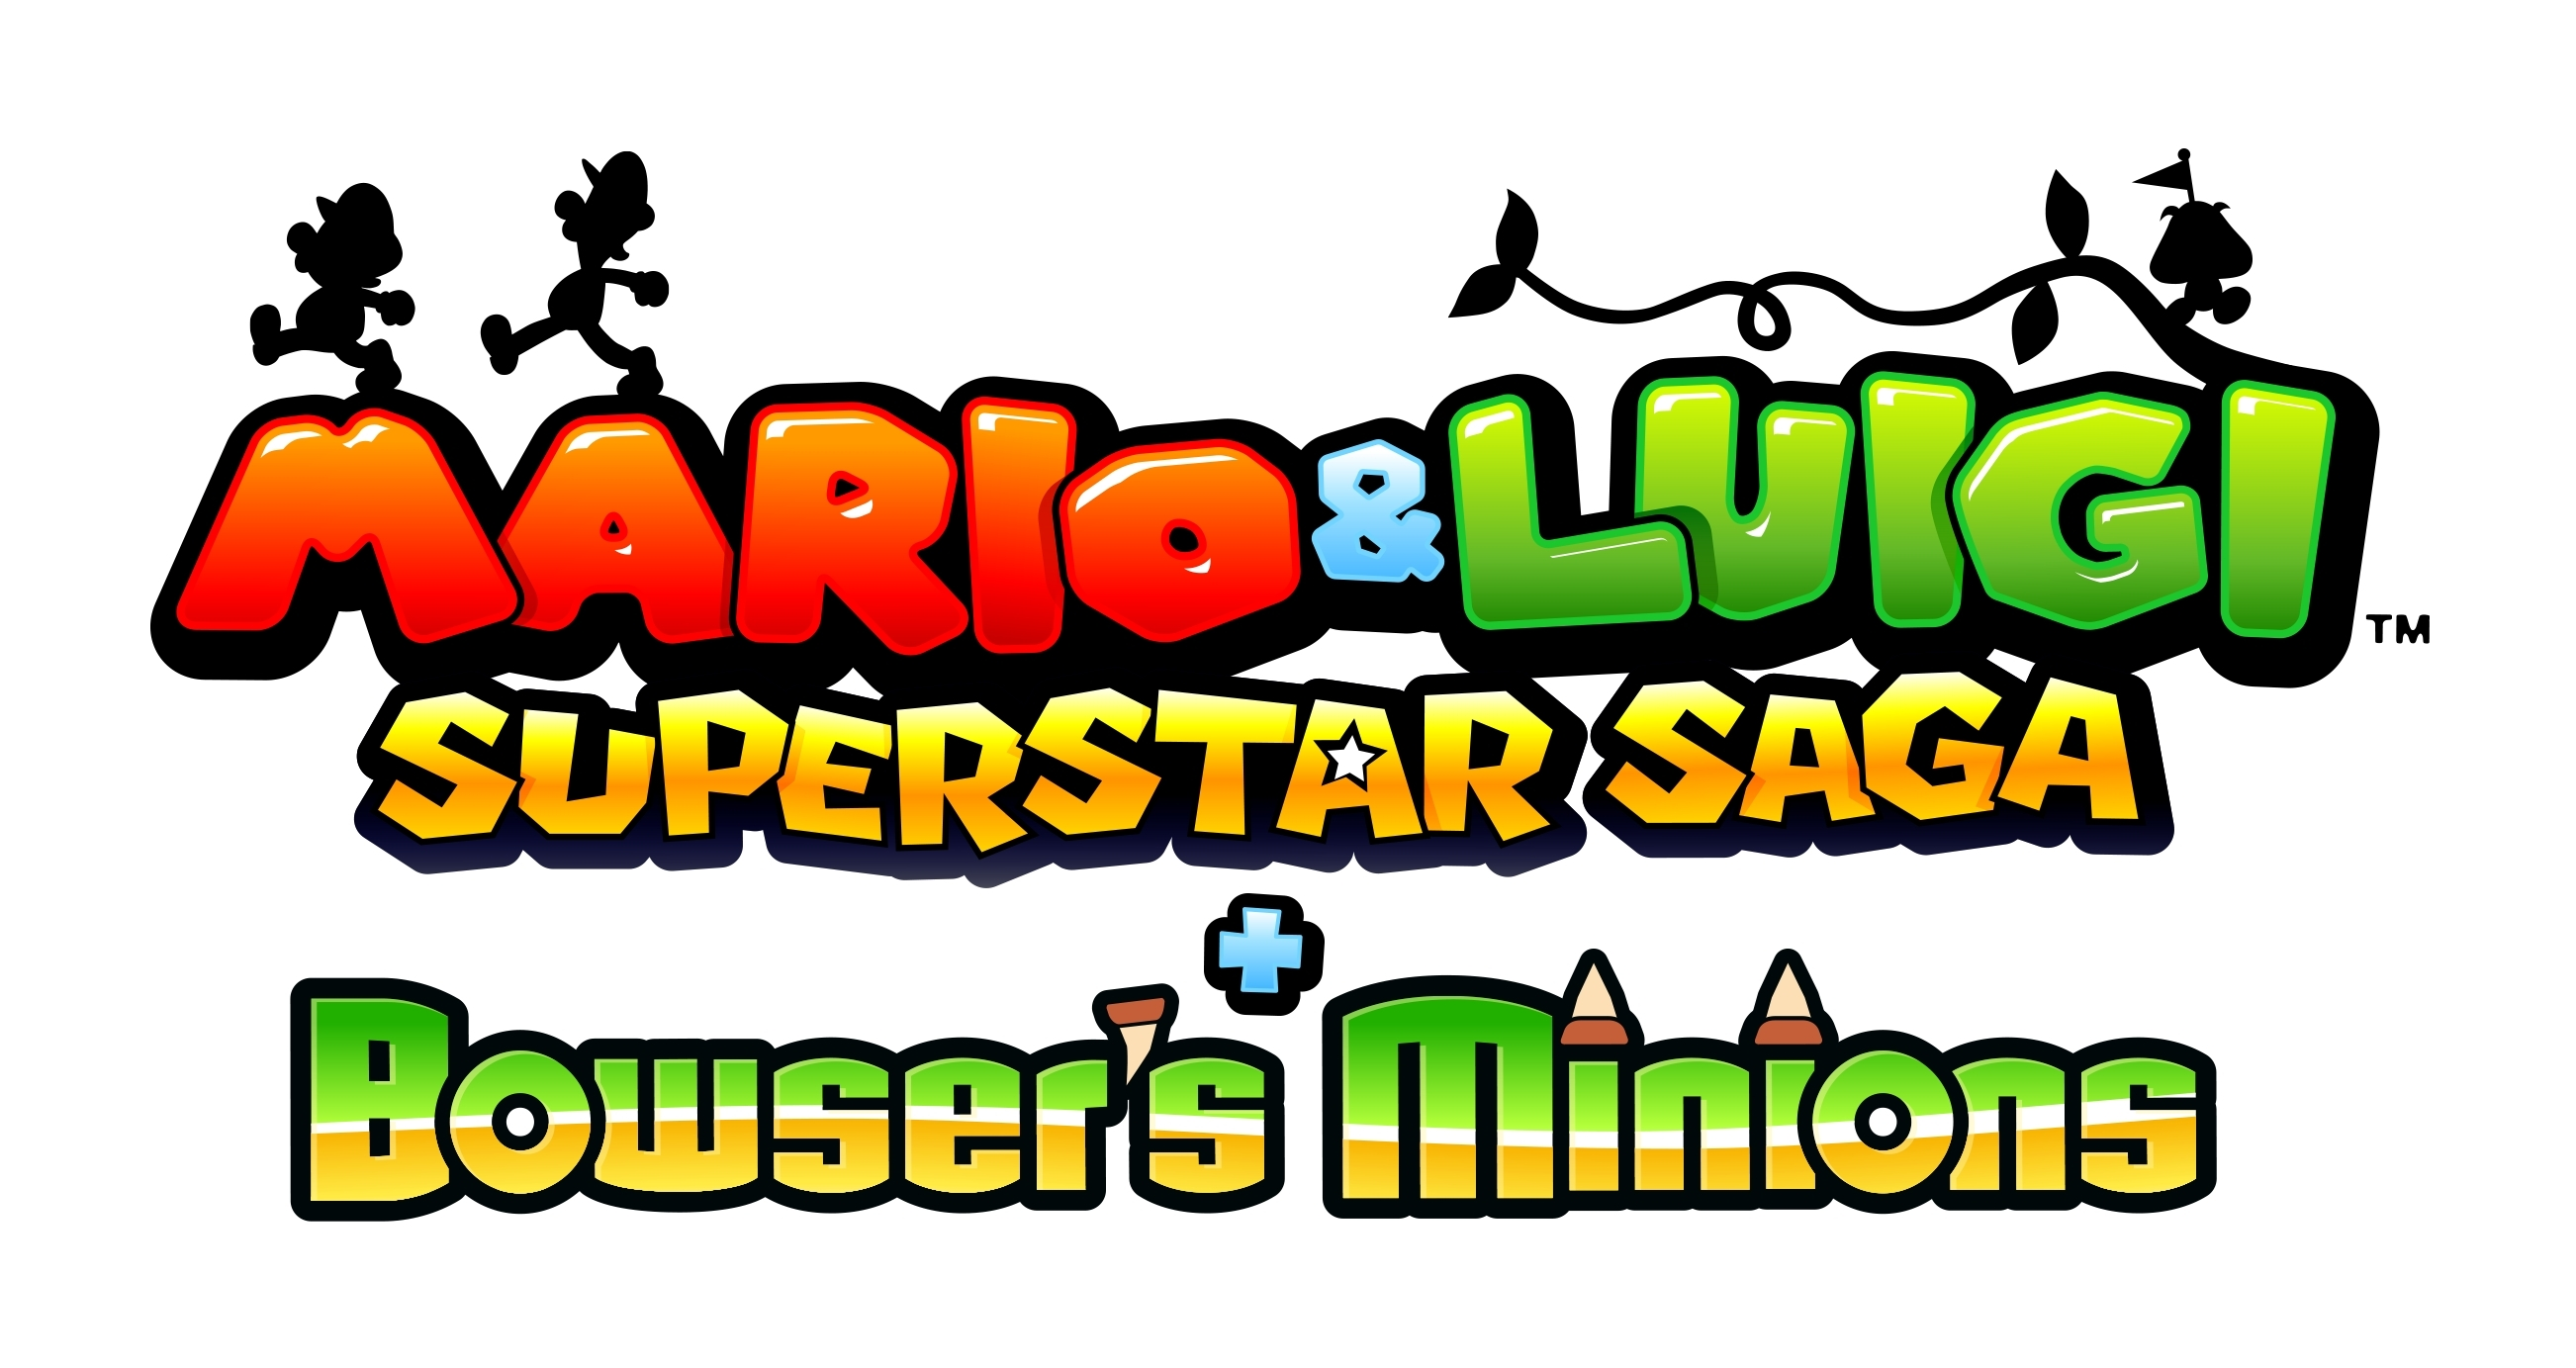 Mario Luigi Superstar Saga Bowser S Minions Review Best Buy